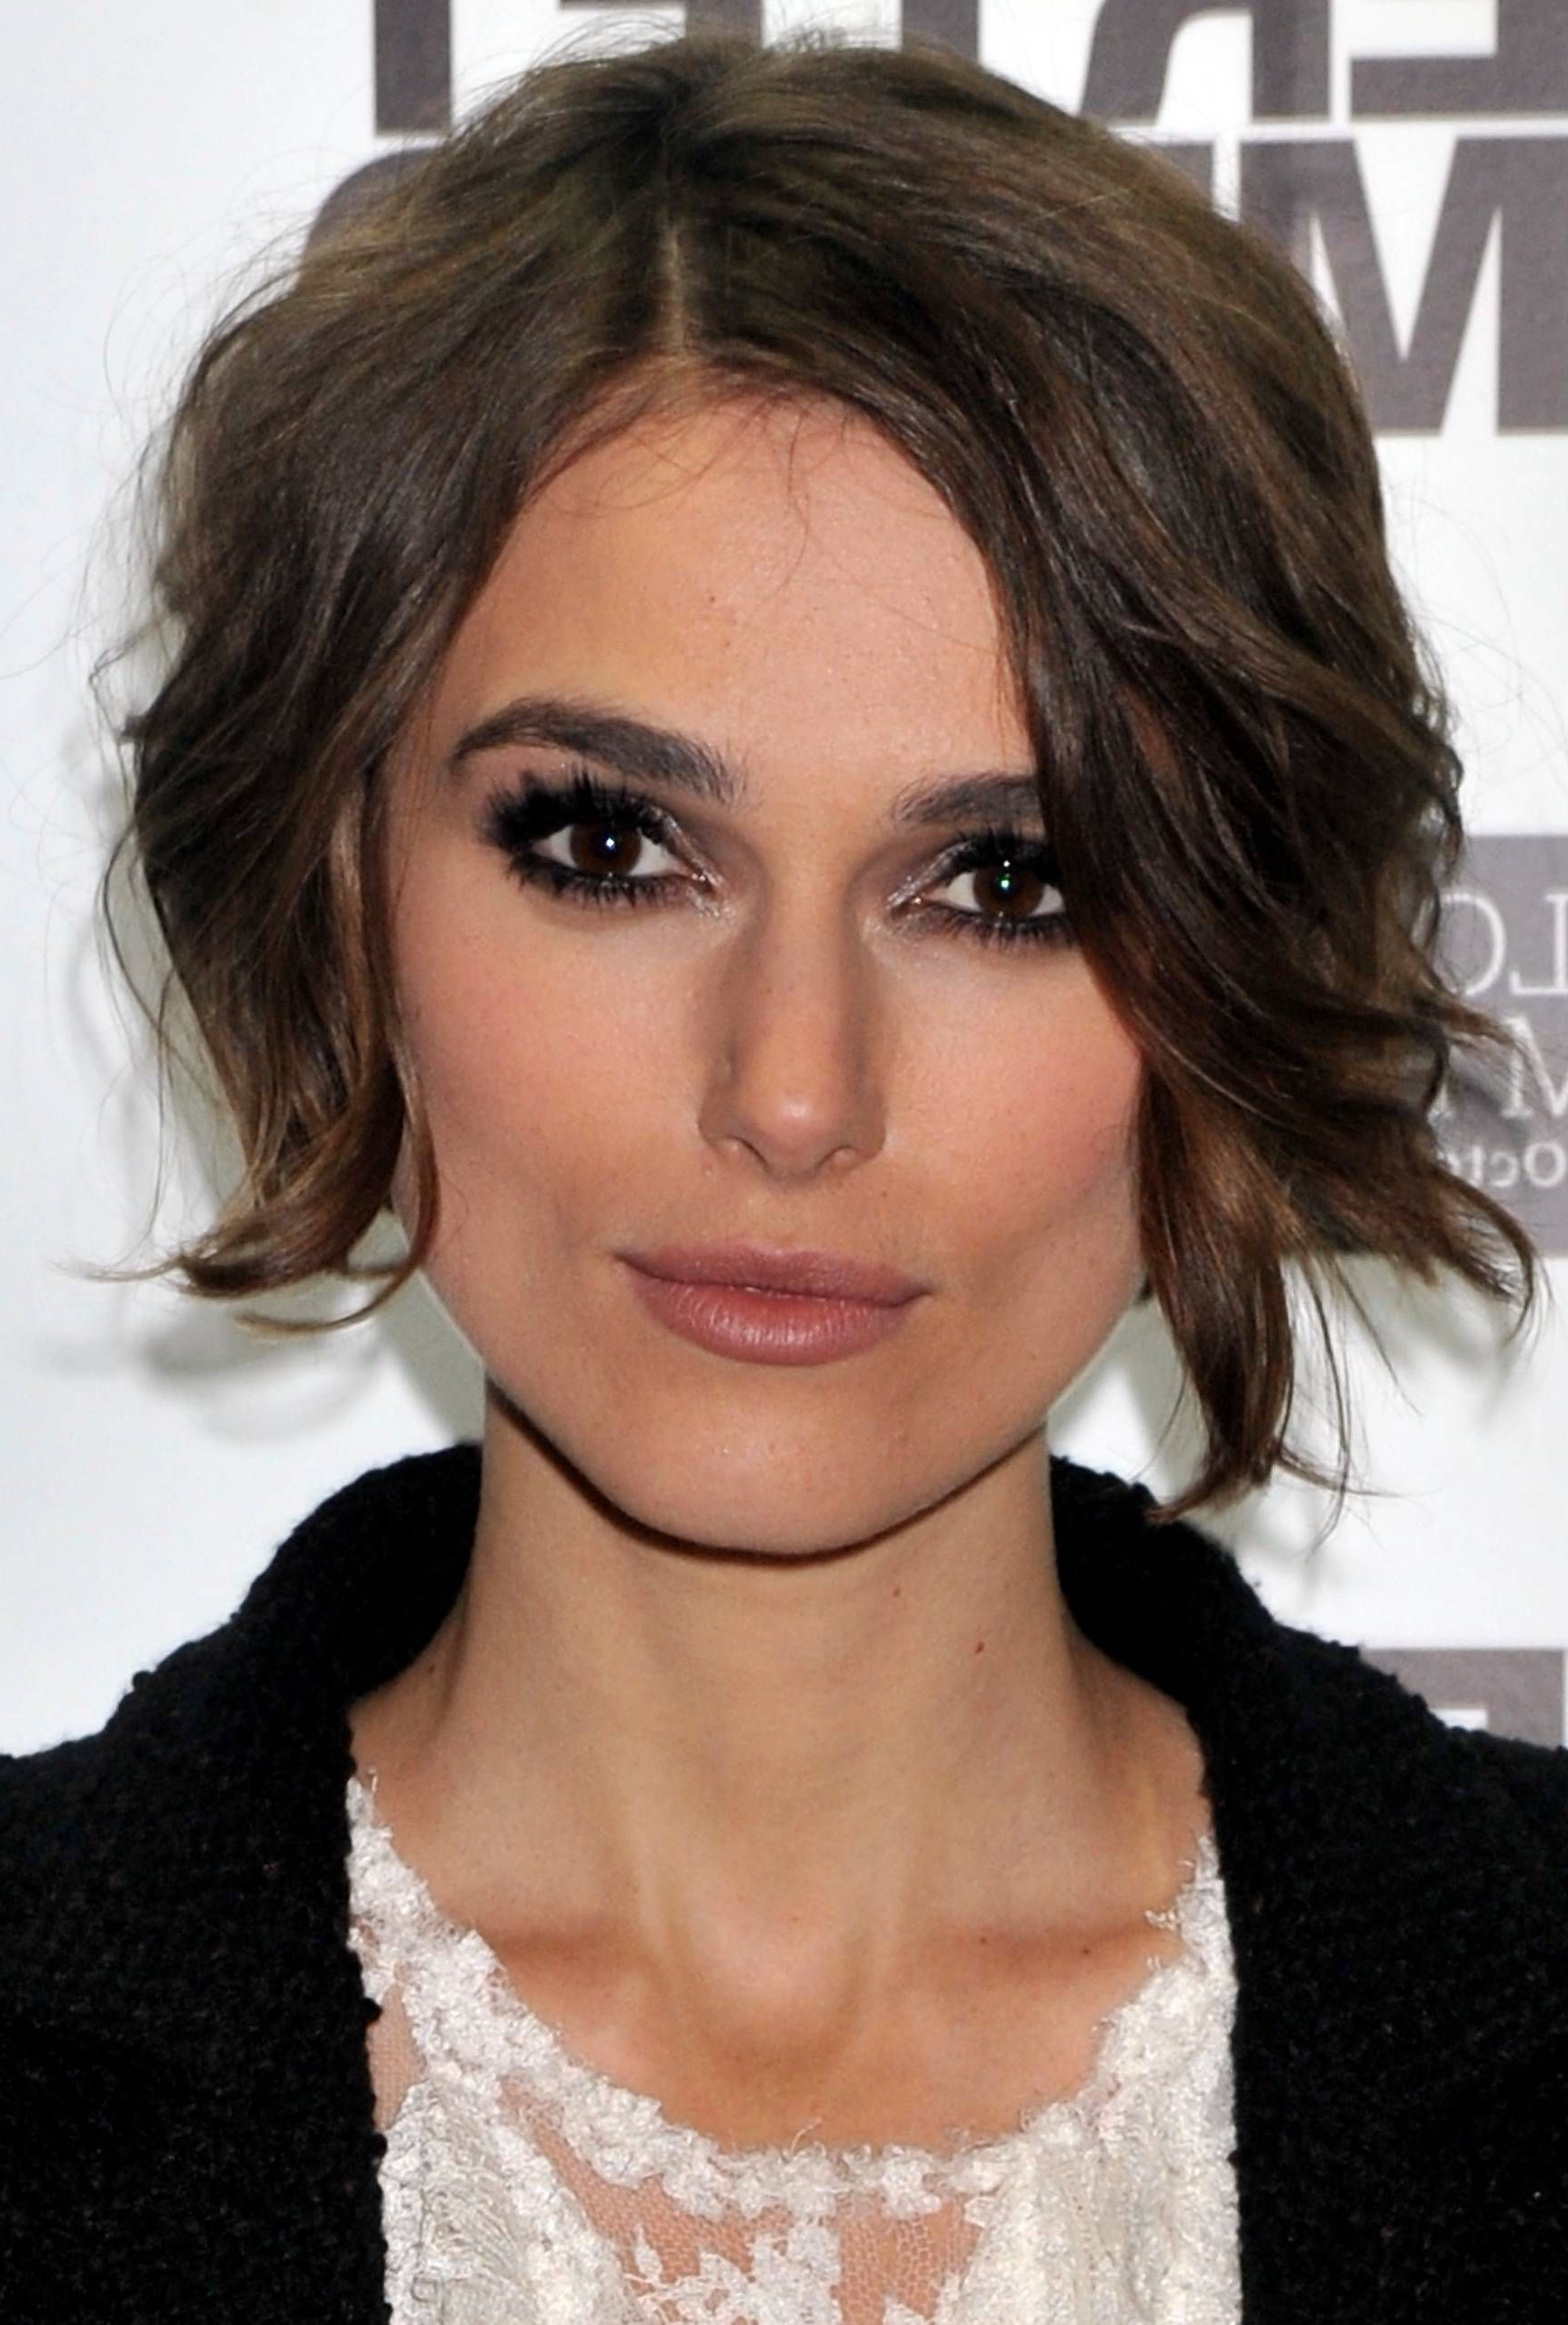 22 Inspiring Short Haircuts For Every Face Shape | Hair | Pinterest Regarding Keira Knightley Short Hairstyles (View 13 of 25)